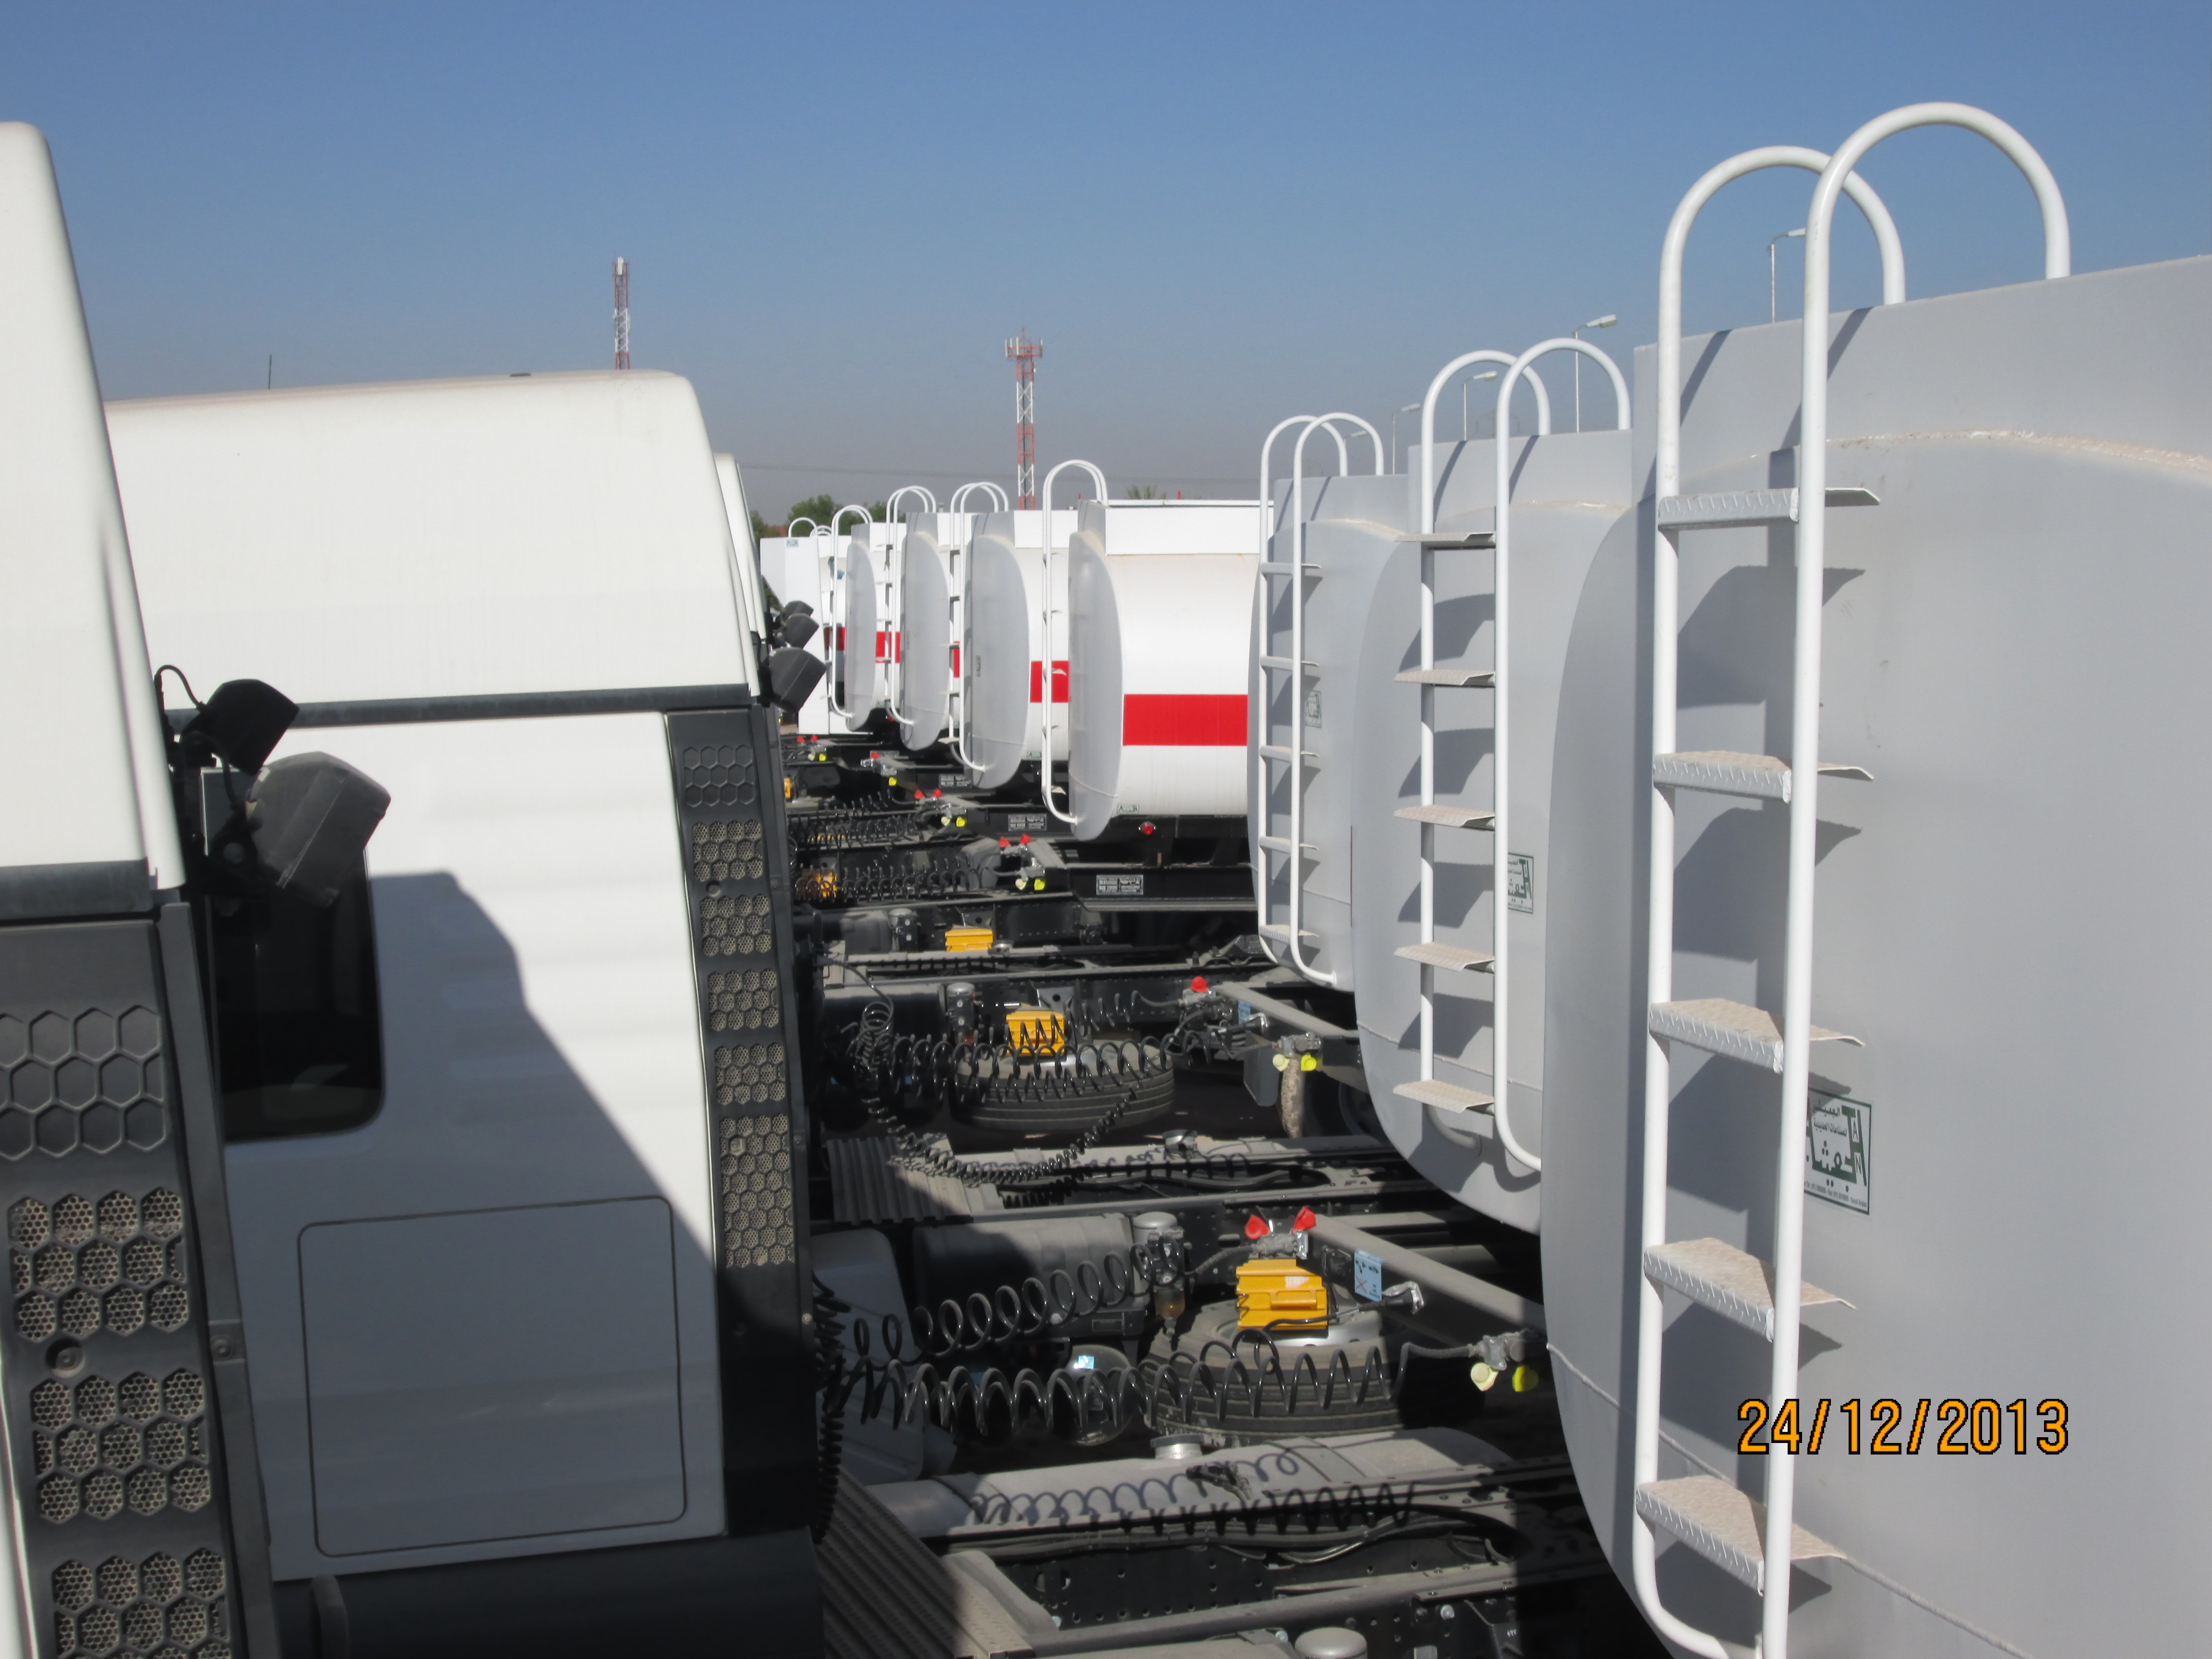 A total of 36,000 liter tanks of diesel fuel Saudi Automation